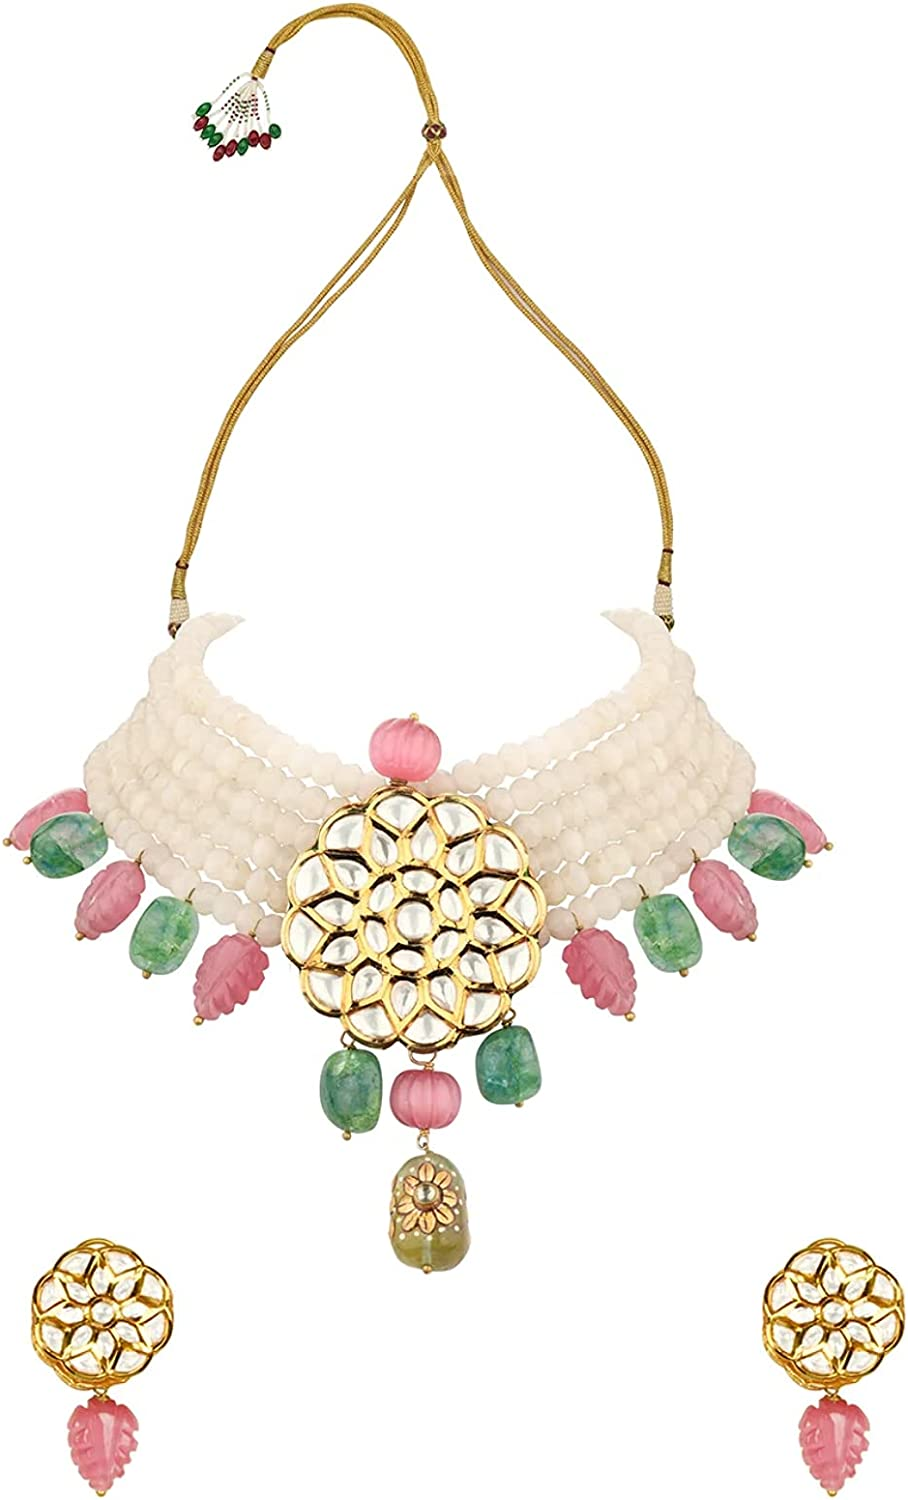 Gold Plated Kundan & Green/Pink Jades Agate Beads Leaf Designer 6 Layered Choker Necklace Set Indian Wedding Bollywood Jewelry